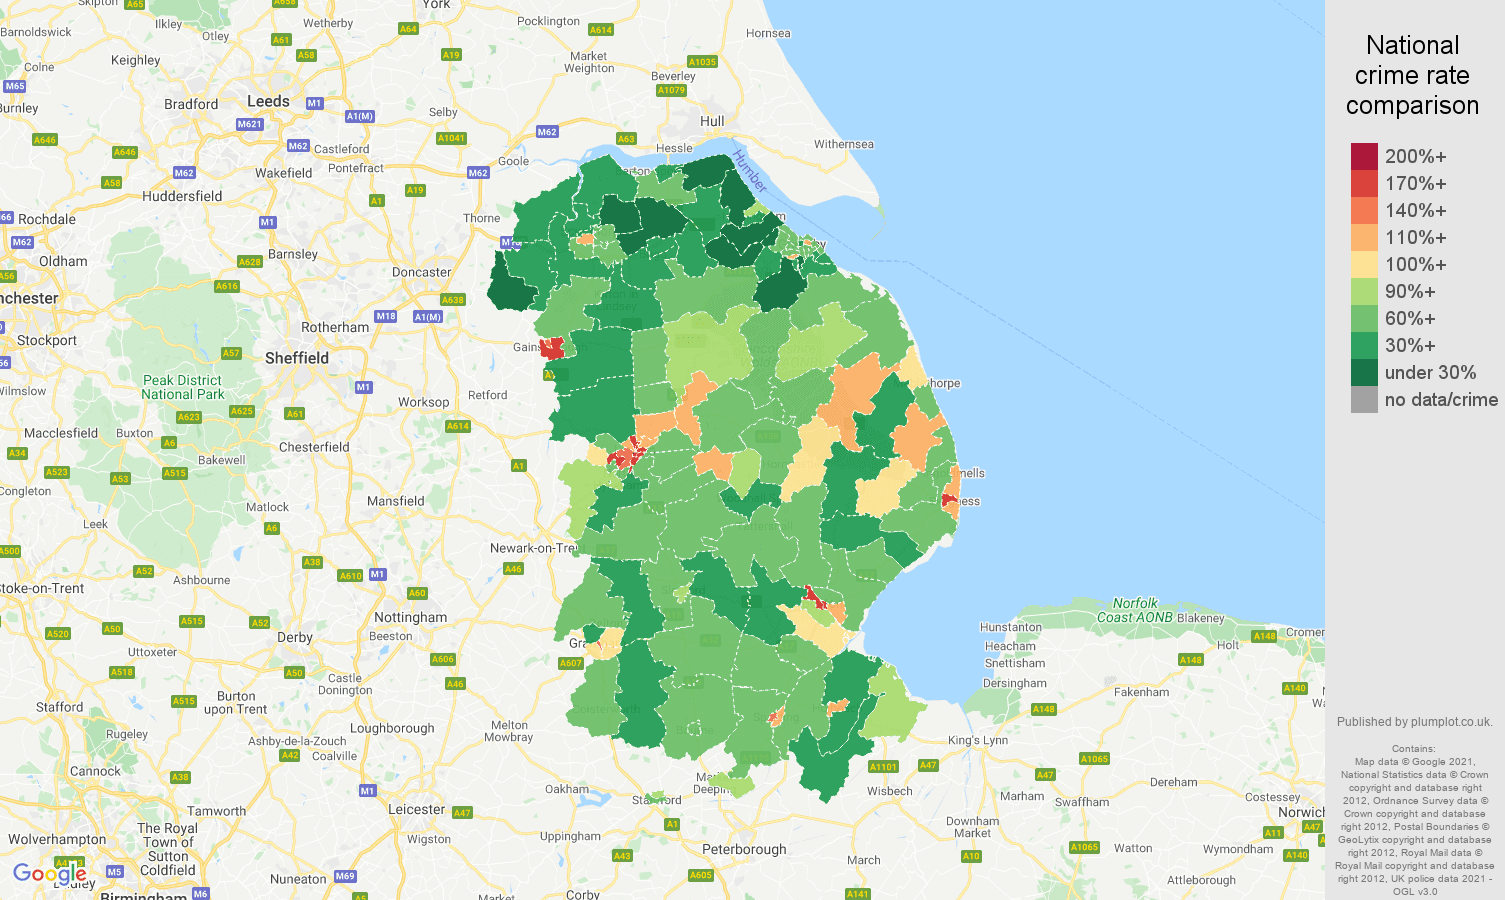 Lincolnshire antisocial behaviour crime rate comparison map